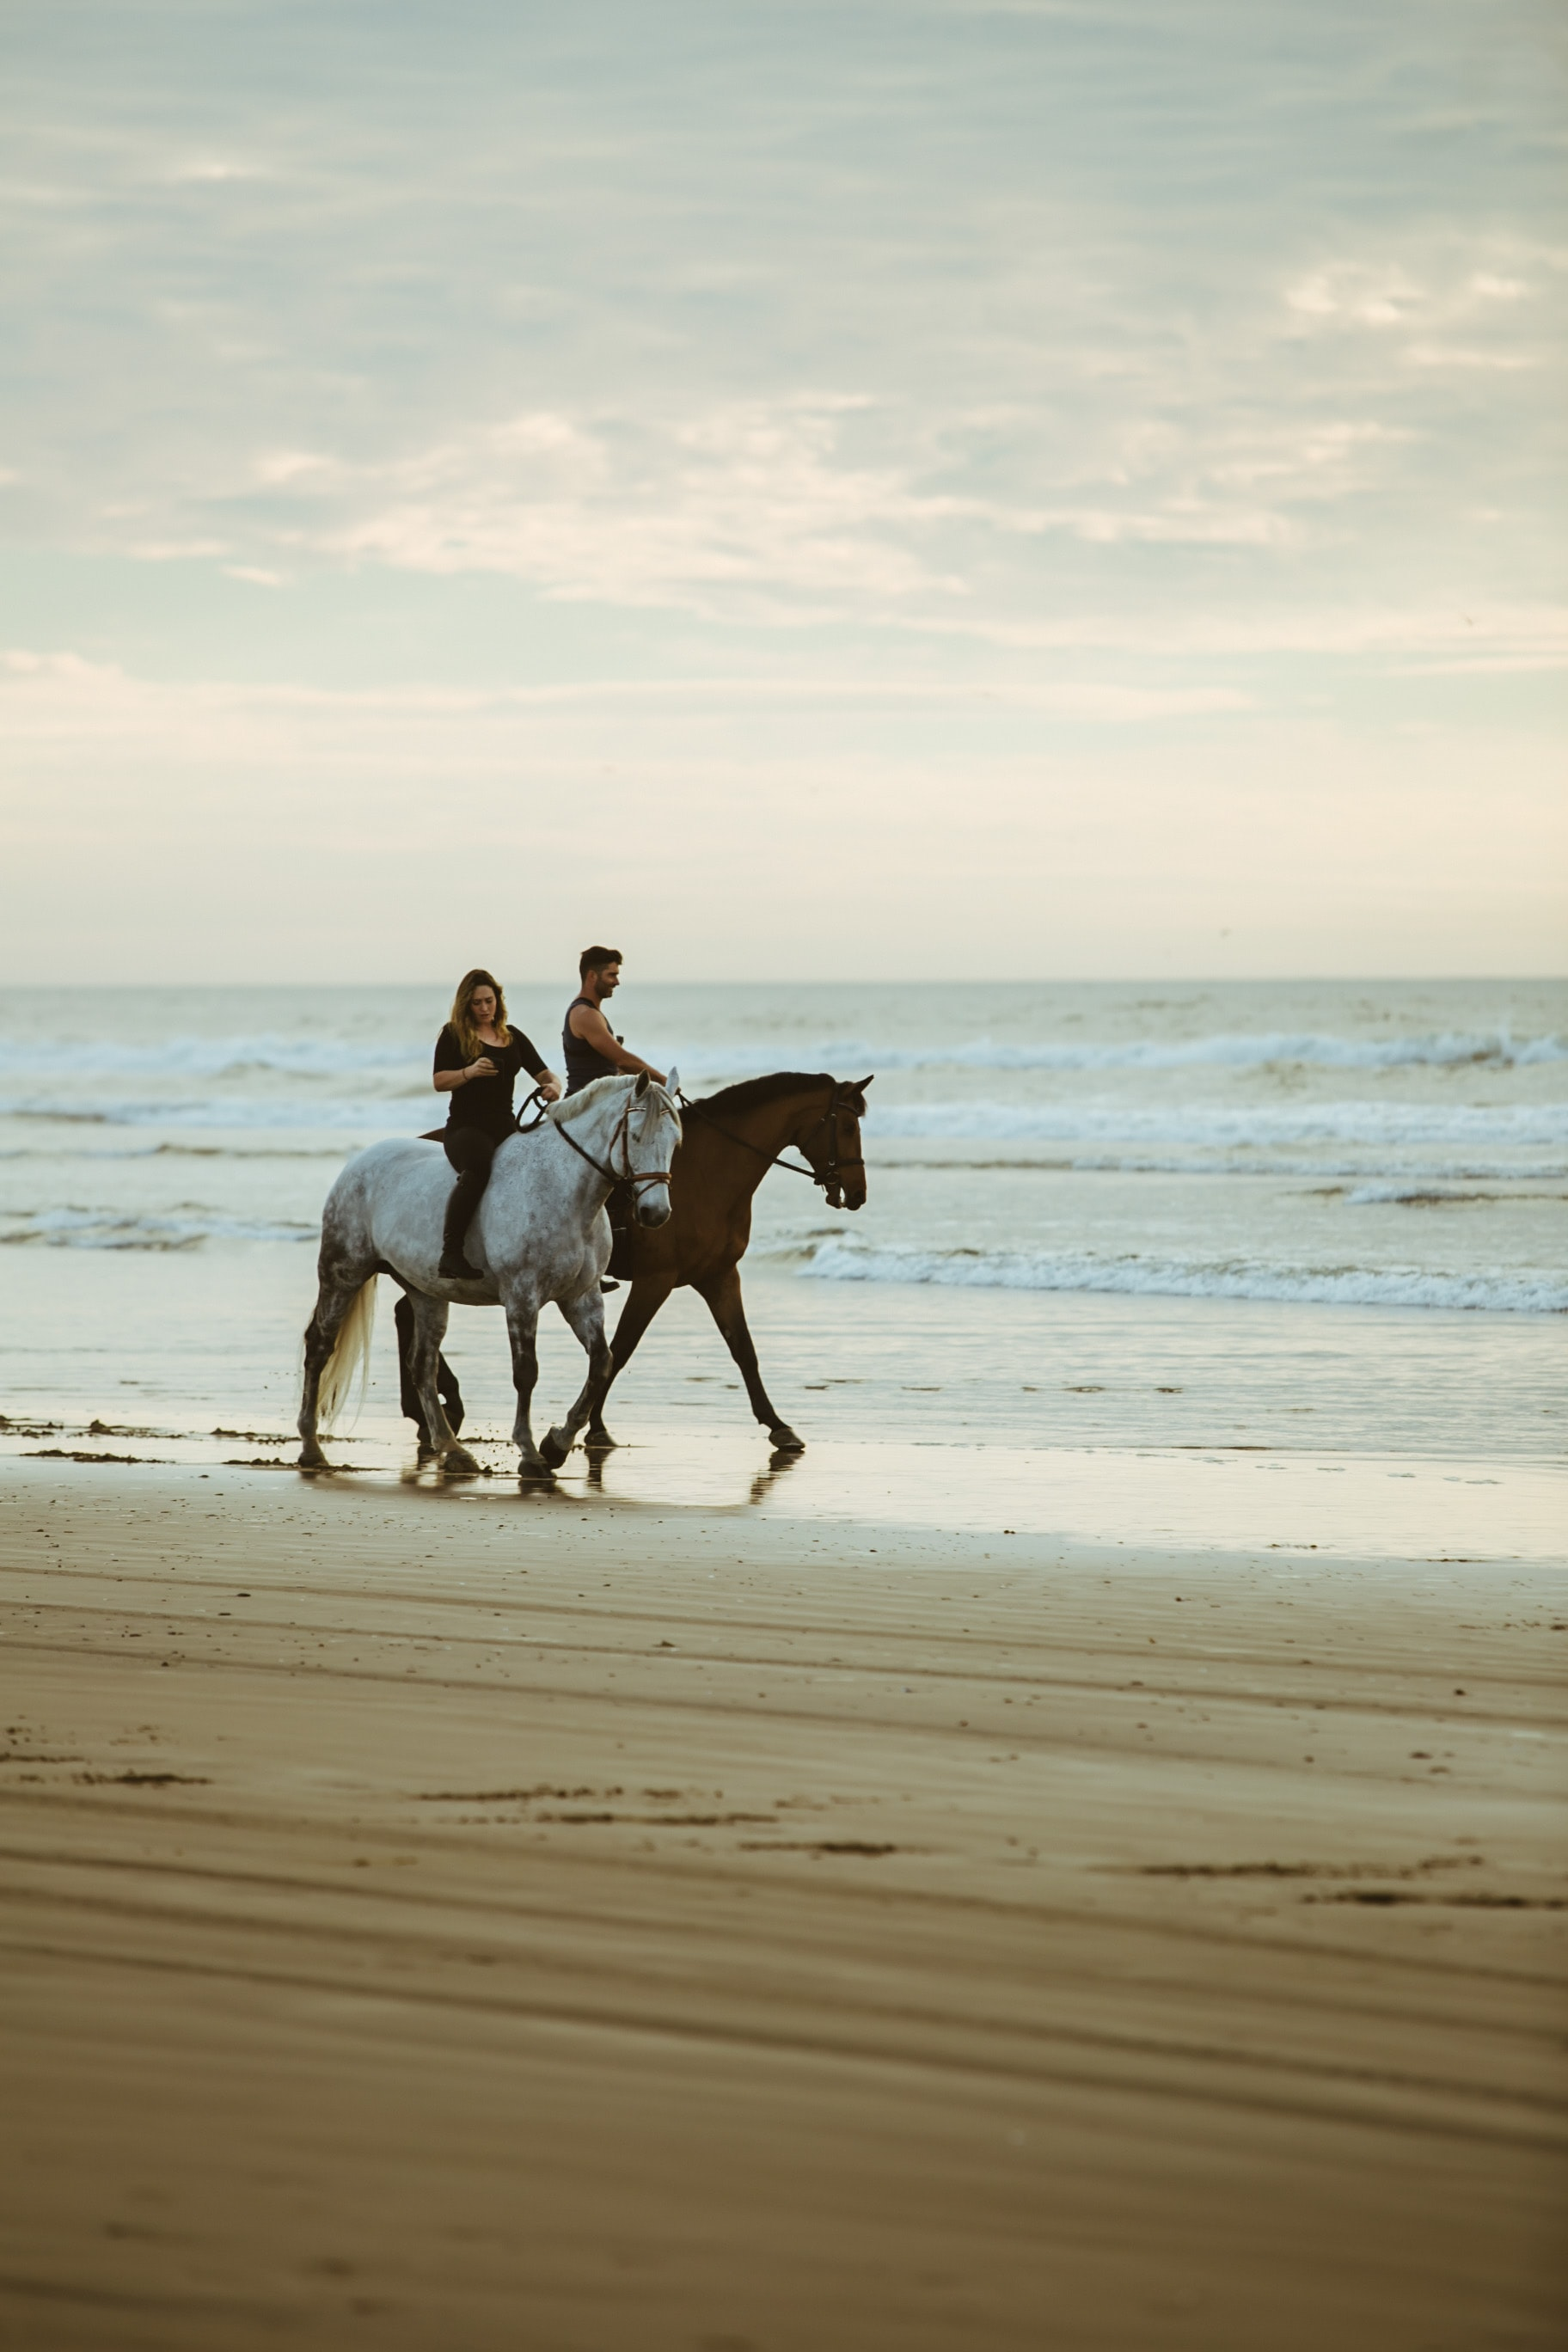 man and woman riding on horse near seashore